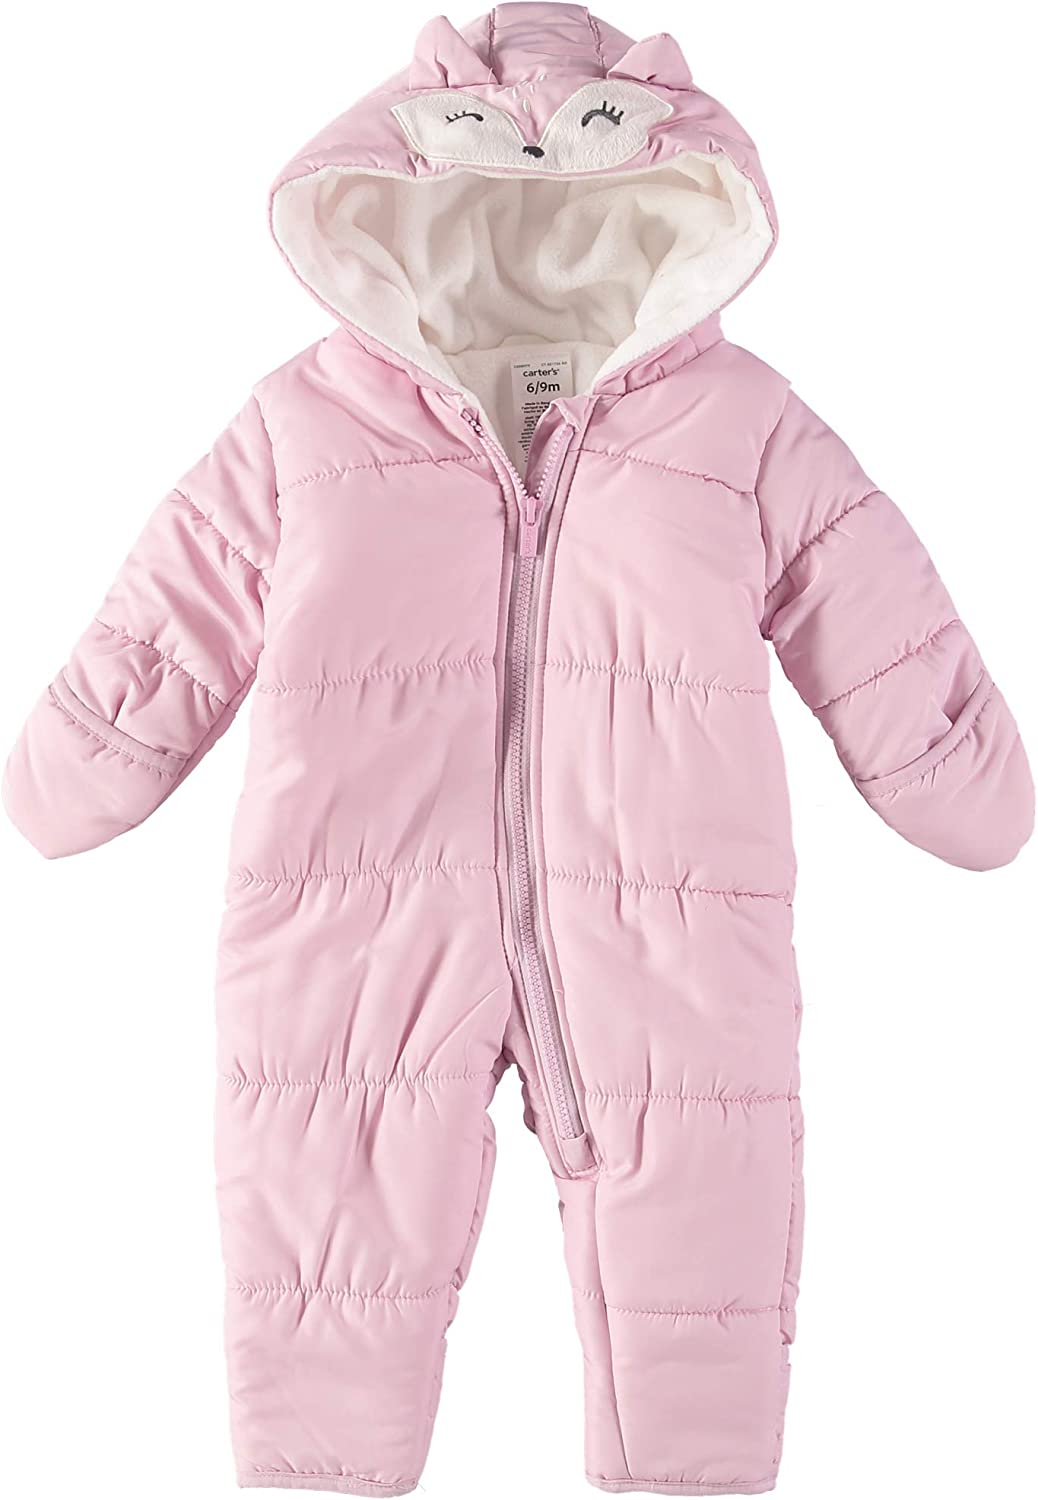 Carter's Baby Boys' and Baby Girls' Zip-Up Hooded Pram with Fold Over Feet